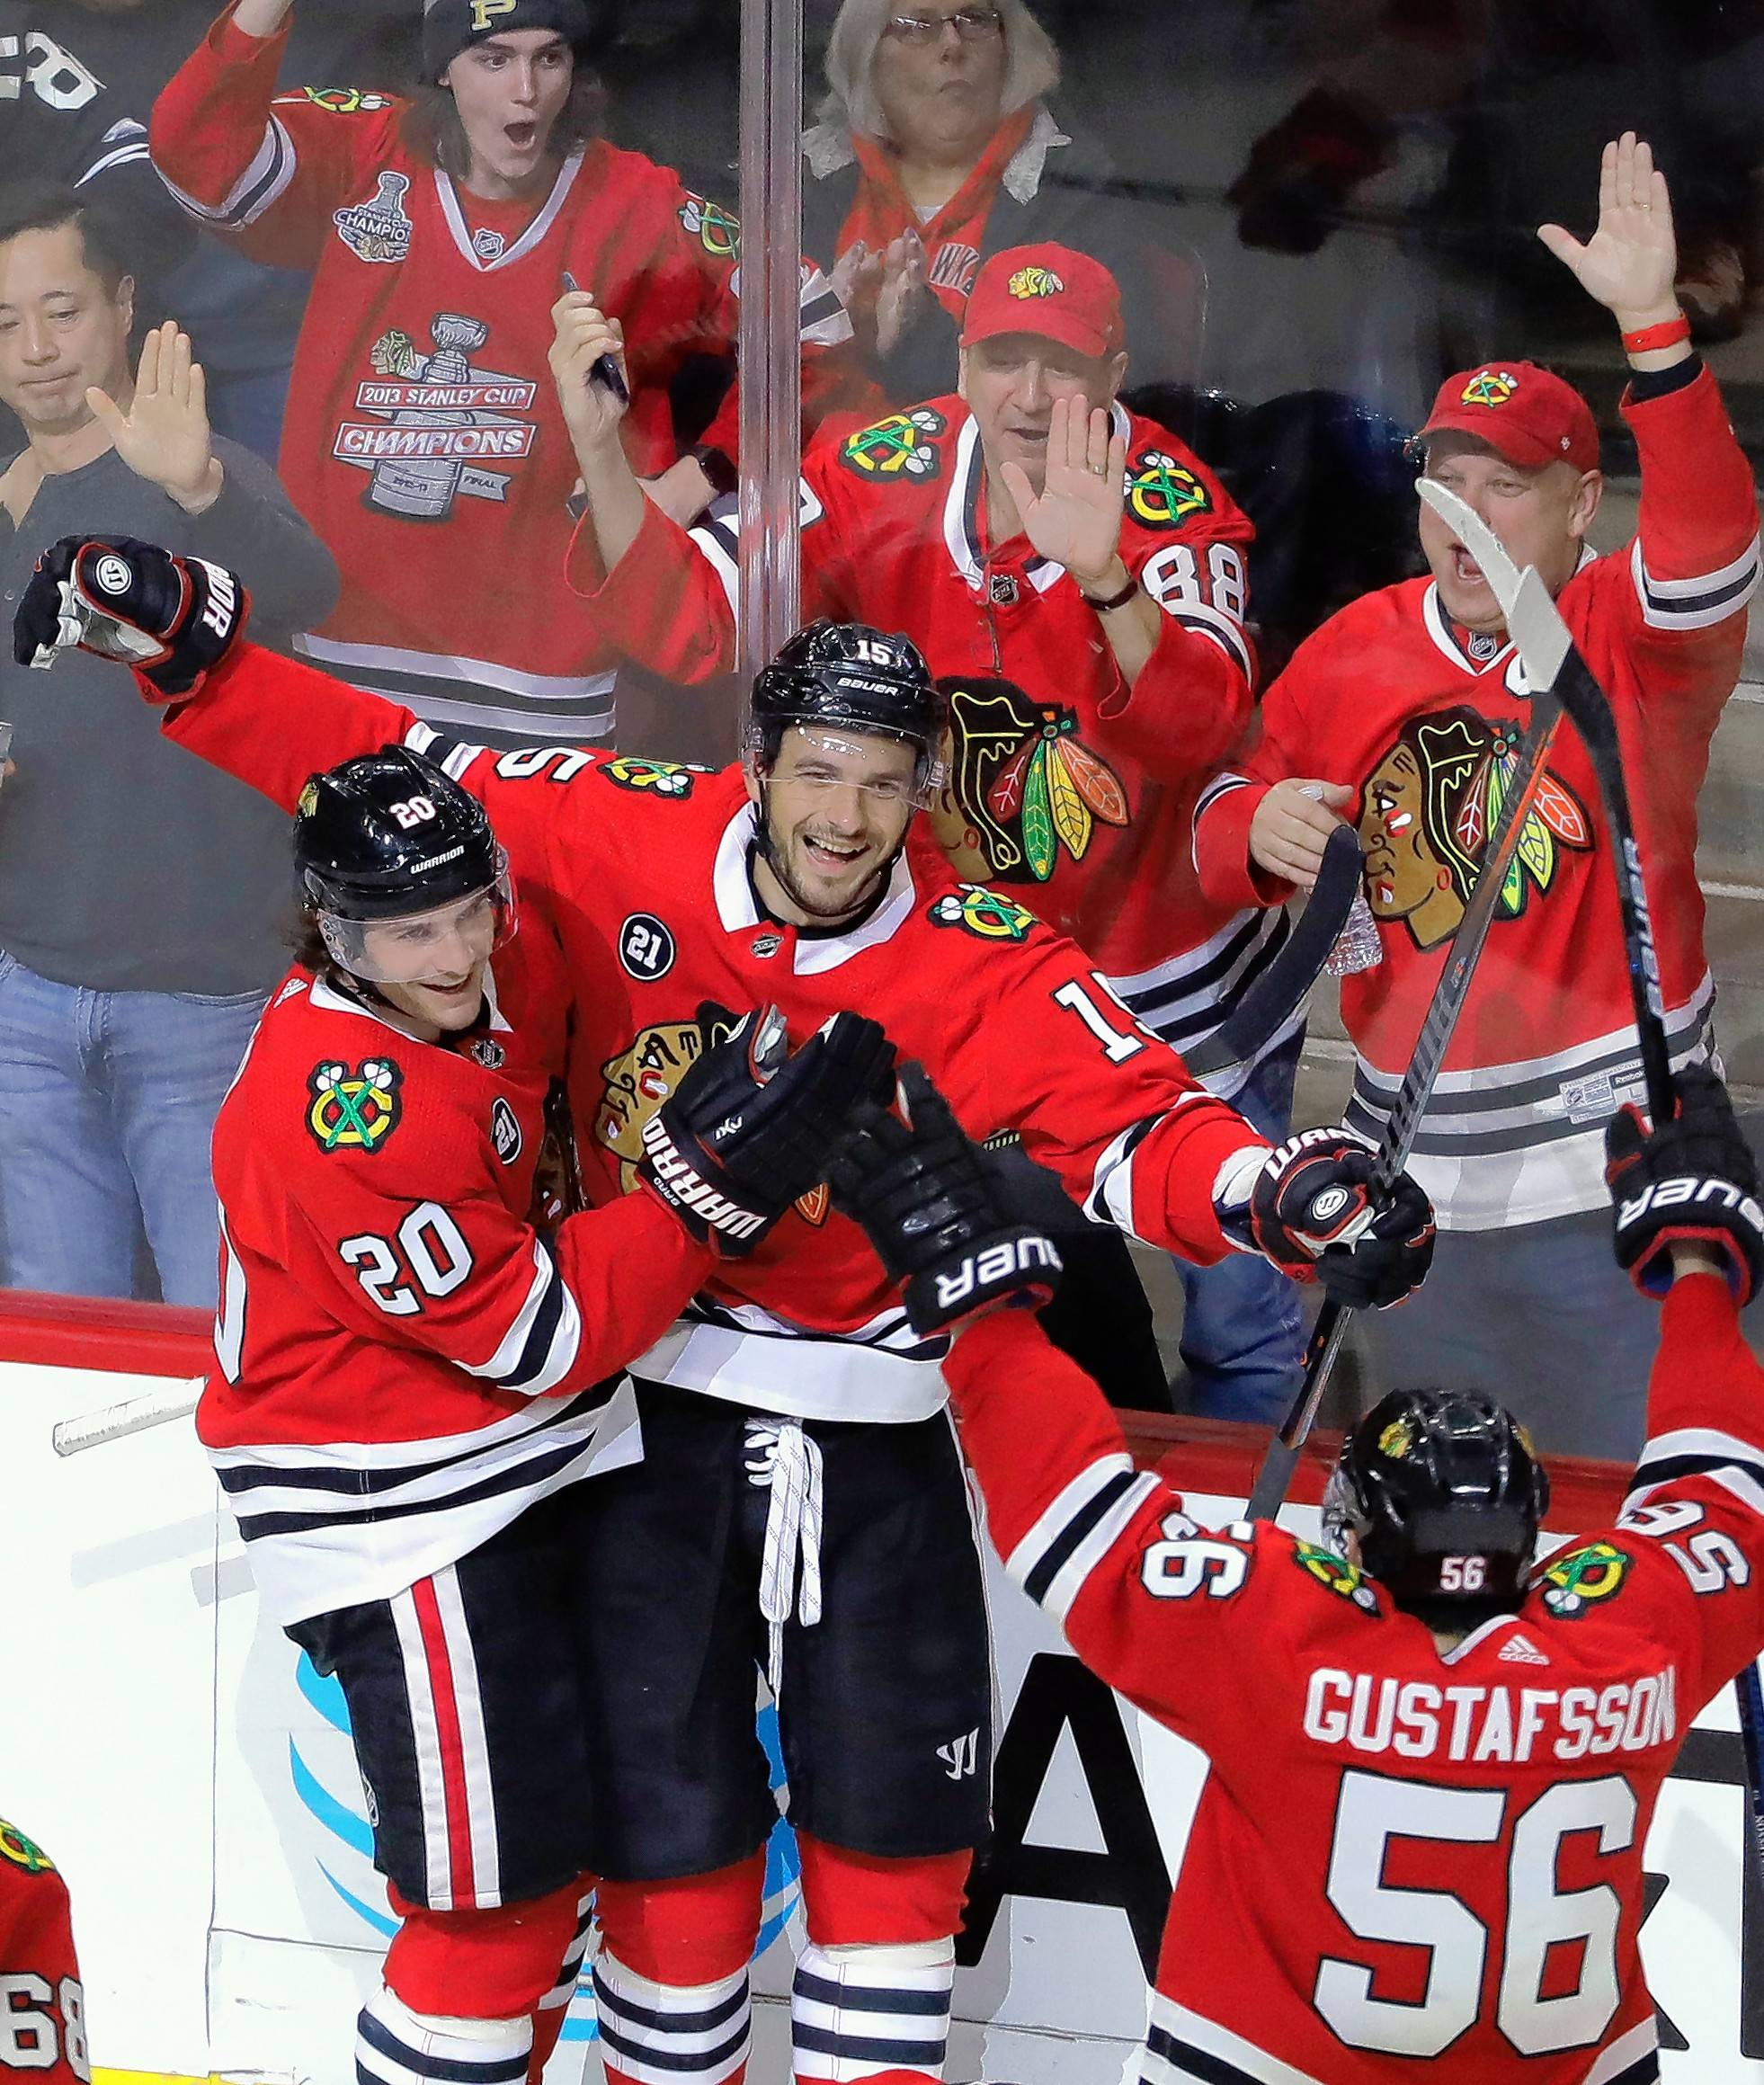 The Chicago Blackhawks are about to play their two biggest games of the season — and both will be at the United Center. If the Hawks can defeat both Colorado and Dallas over the weekend, it will go a long way in proving they plan to make plenty of noise down the stretch ... and perhaps into the postseason.